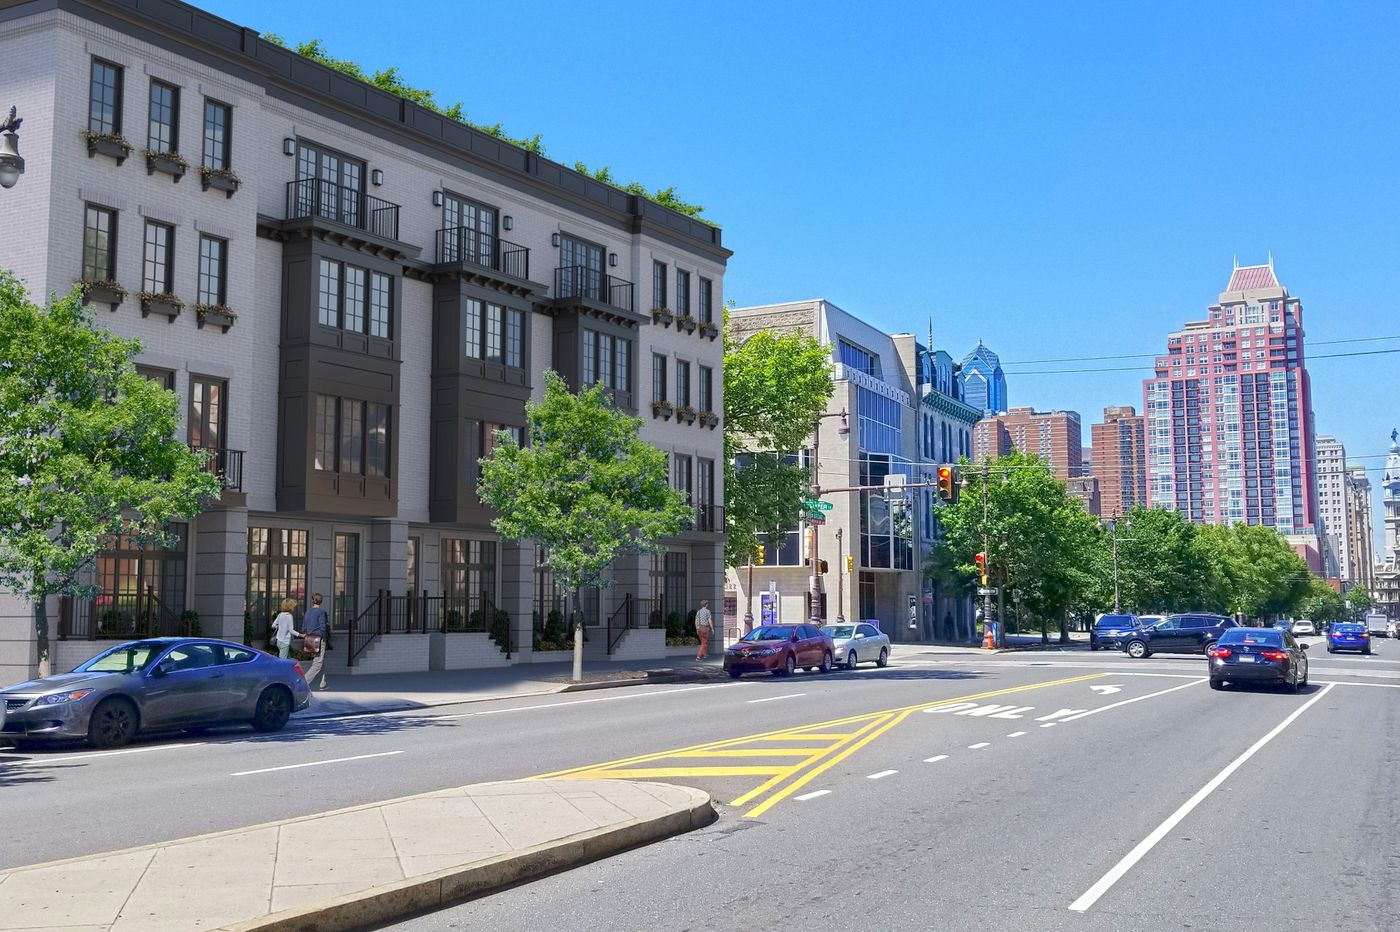 Let's cap Philly's 10-year tax abatement to be fair to all | Opinion